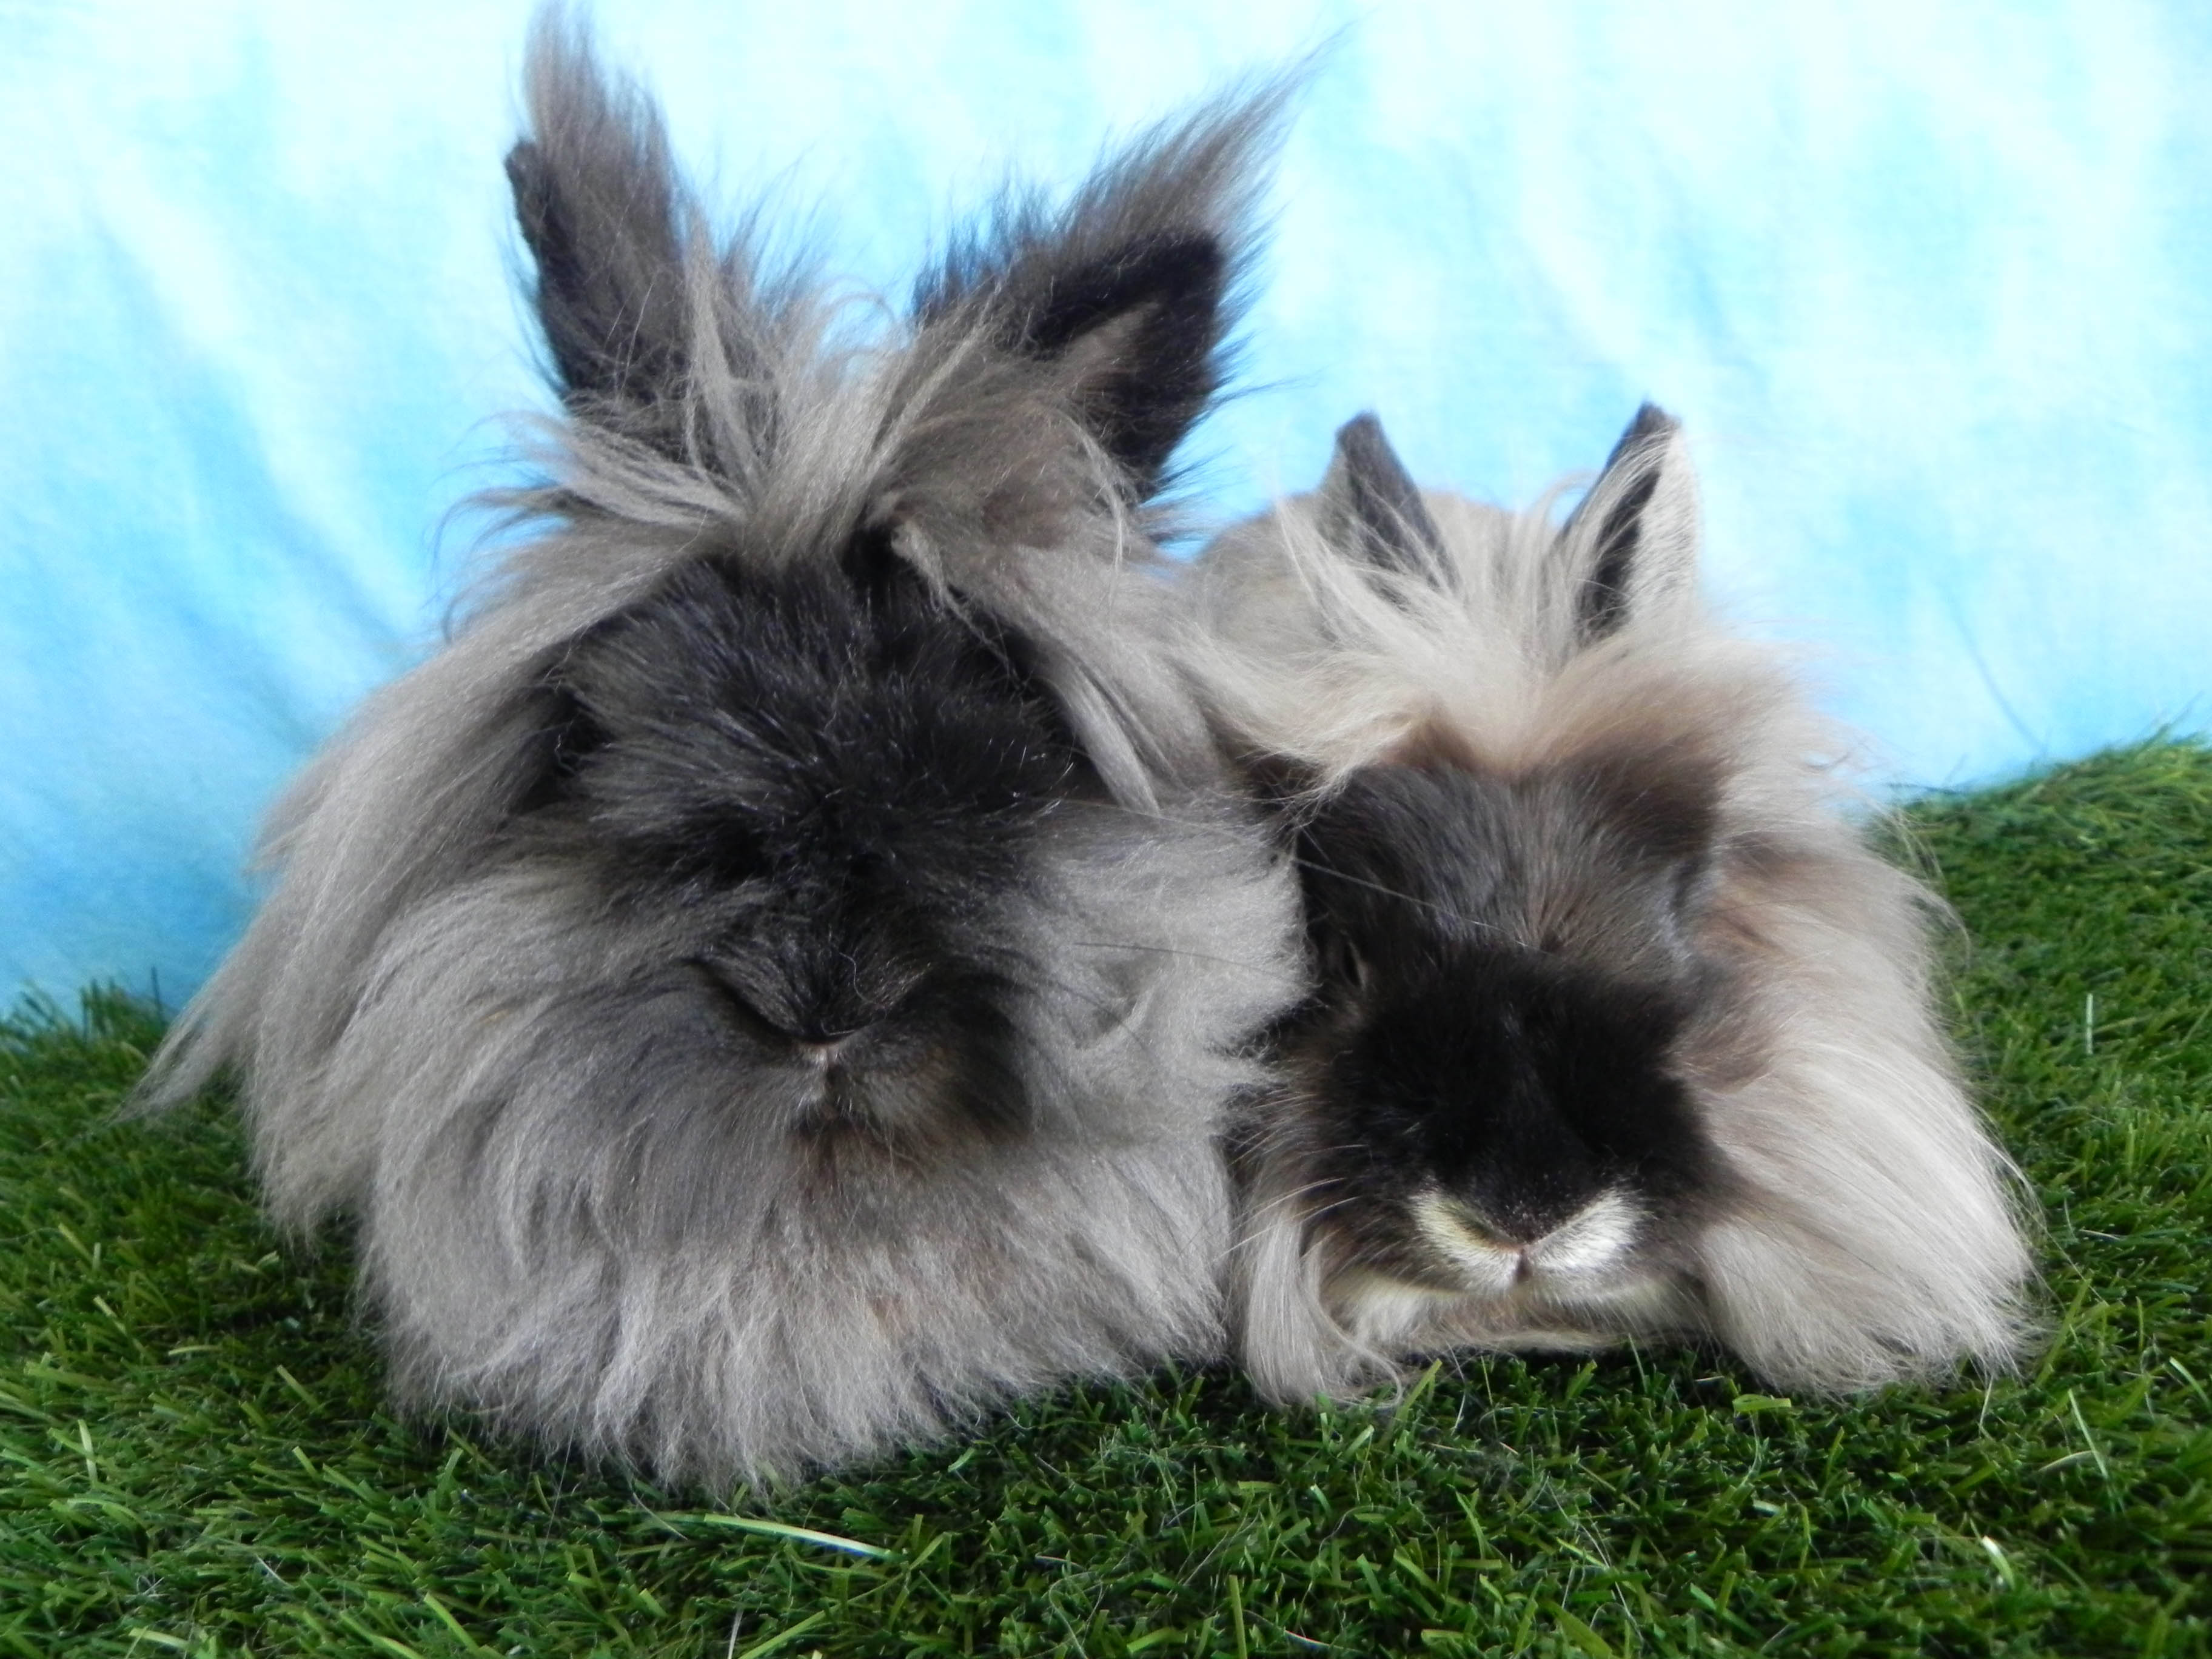 Chaz and Basil